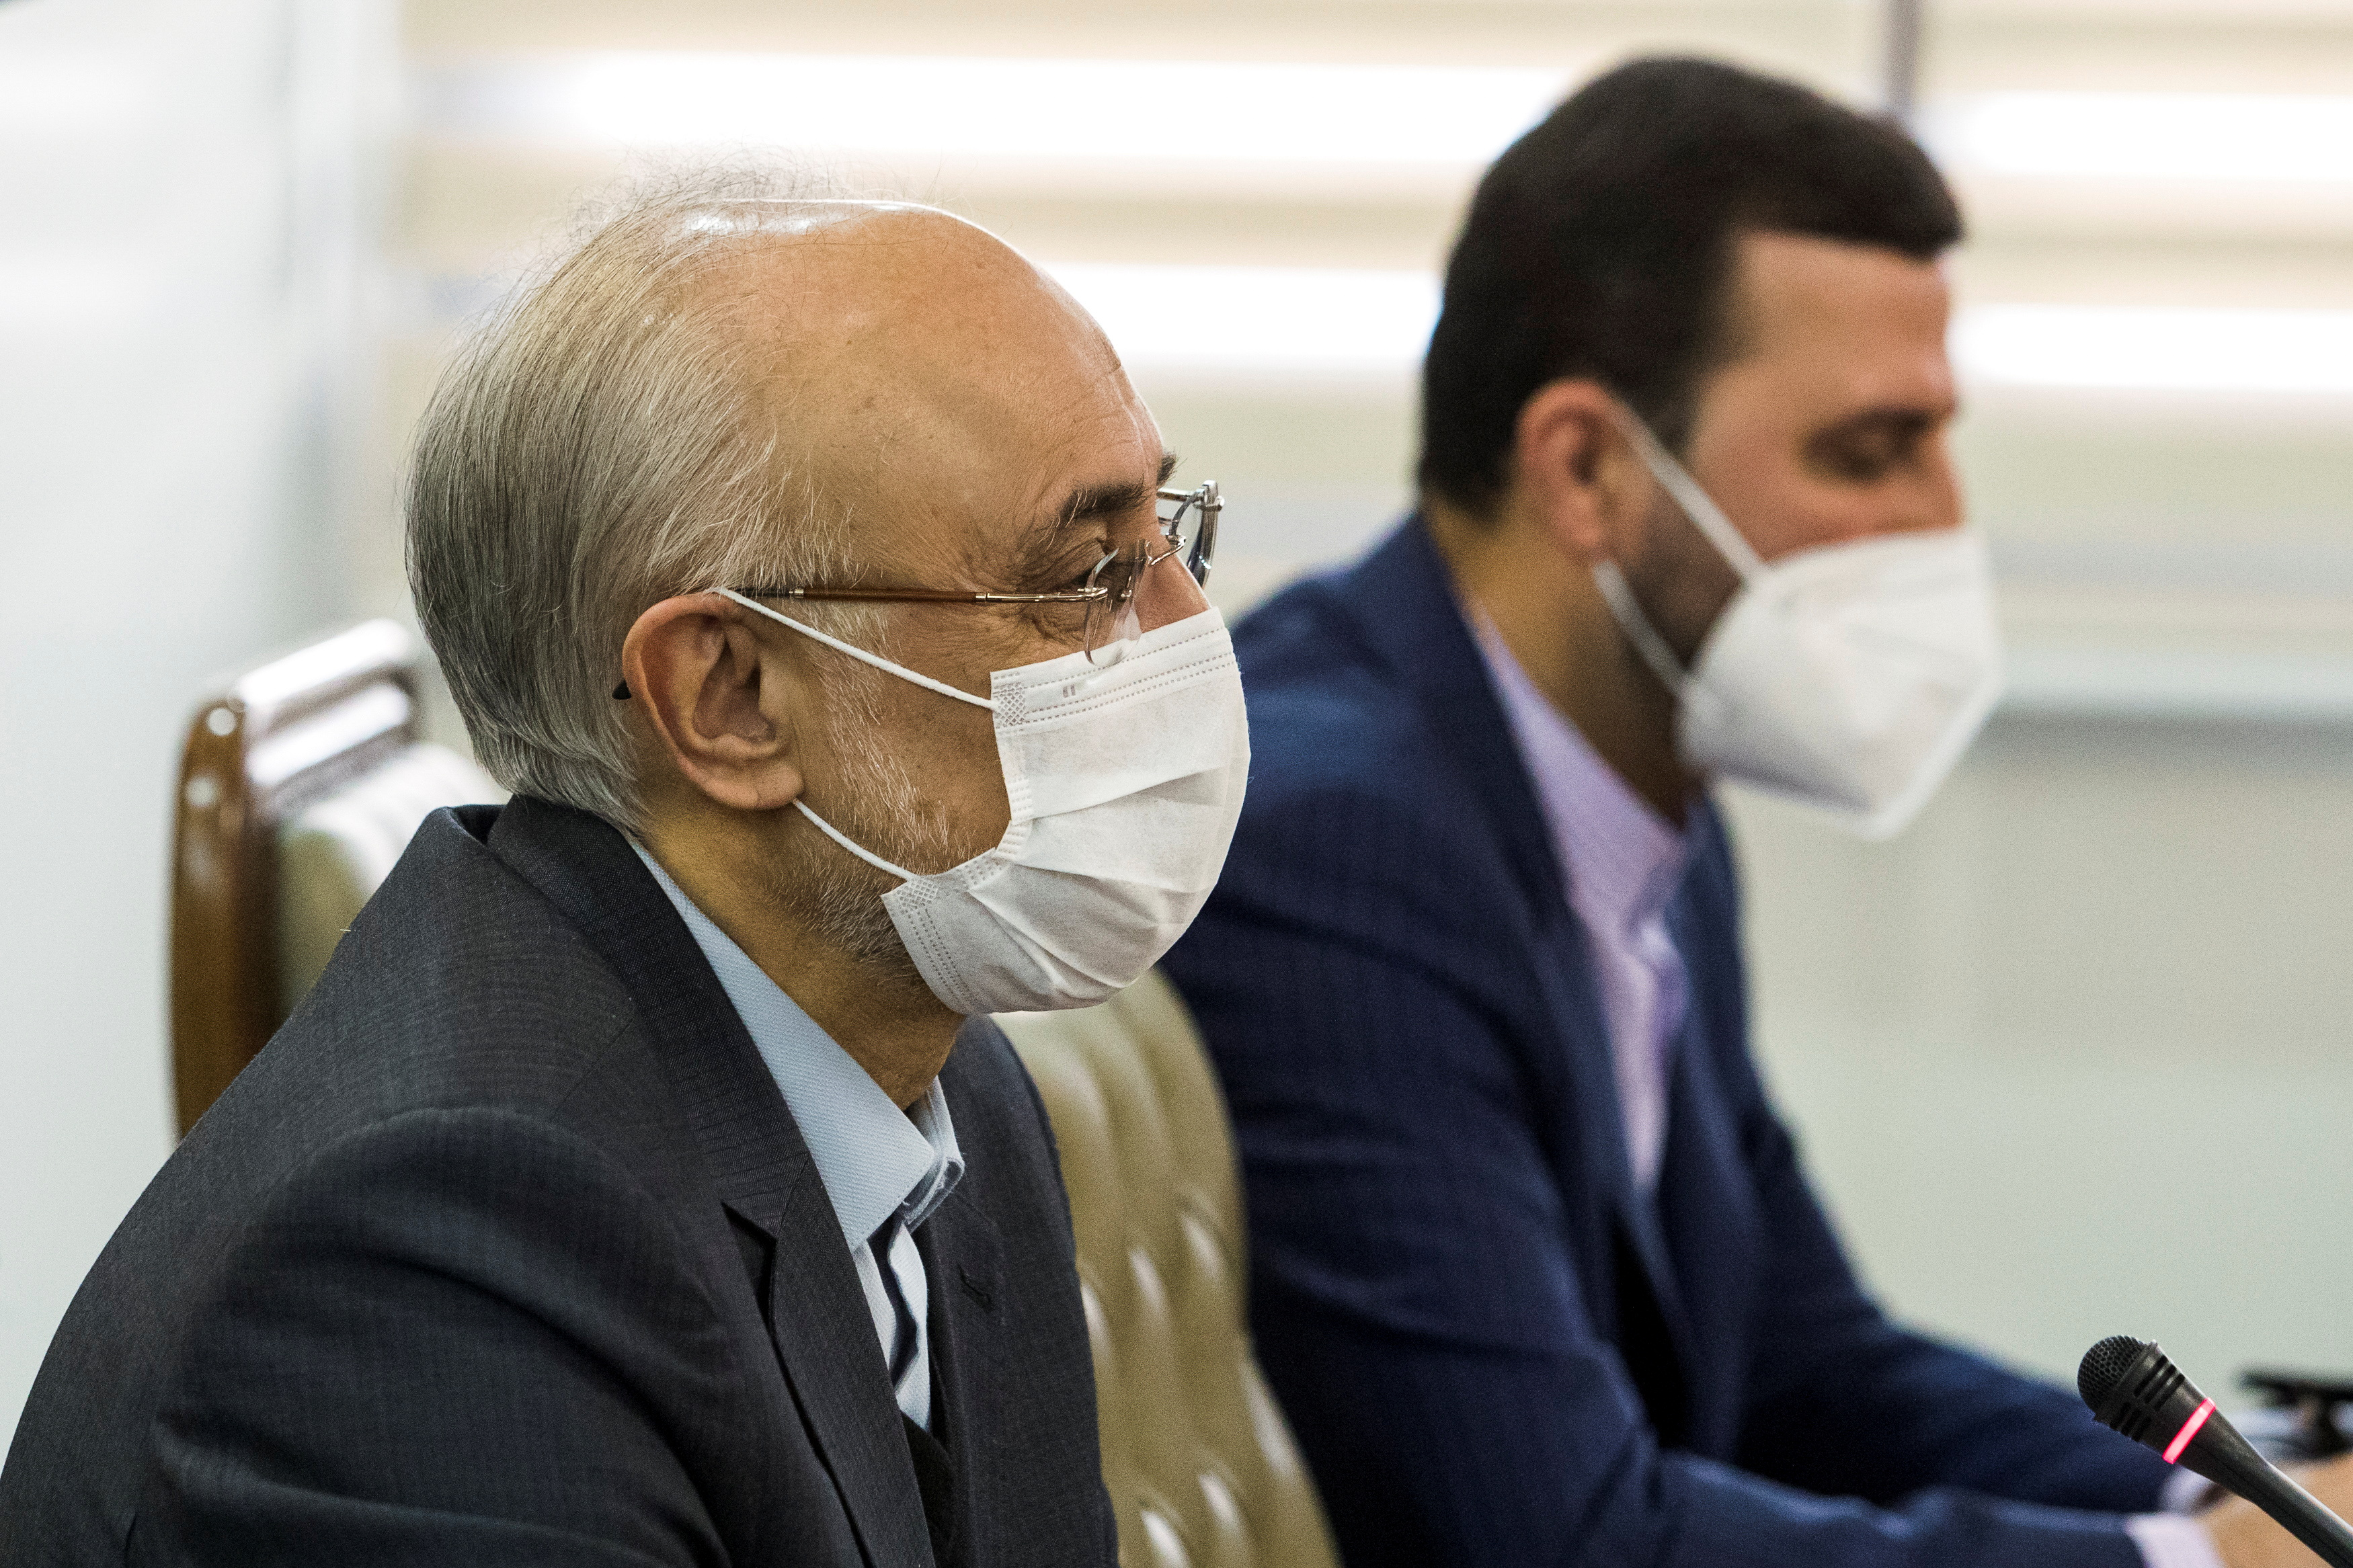 Head of Iran's Atomic Energy Organization Ali-Akbar Salehi wears a mask as he speaks during a meeting with International Atomic Energy Agency (IAEA) Director General Rafael Grossi, in Tehran, Iran February 21, 2021. Hadi Zand/WANA (West Asia News Agency) via REUTERS ATTENTION EDITORS - THIS IMAGE HAS BEEN SUPPLIED BY A THIRD PARTY.